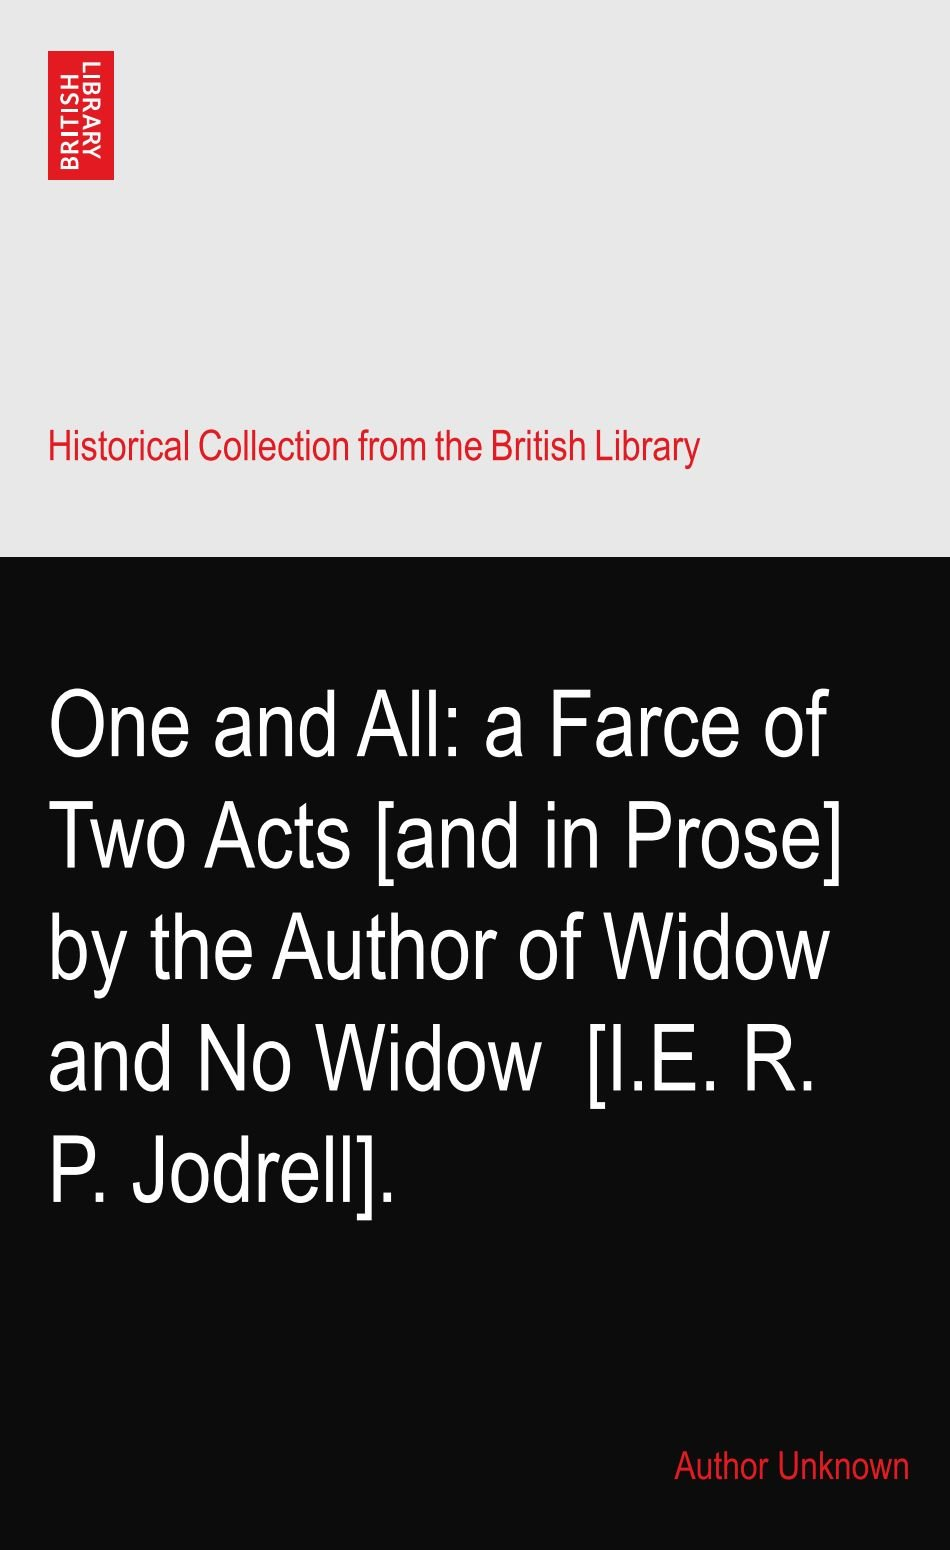 Read Online One and All: a Farce of Two Acts [and in Prose] by the Author of Widow and No Widow? [I.E. R. P. Jodrell]. pdf epub